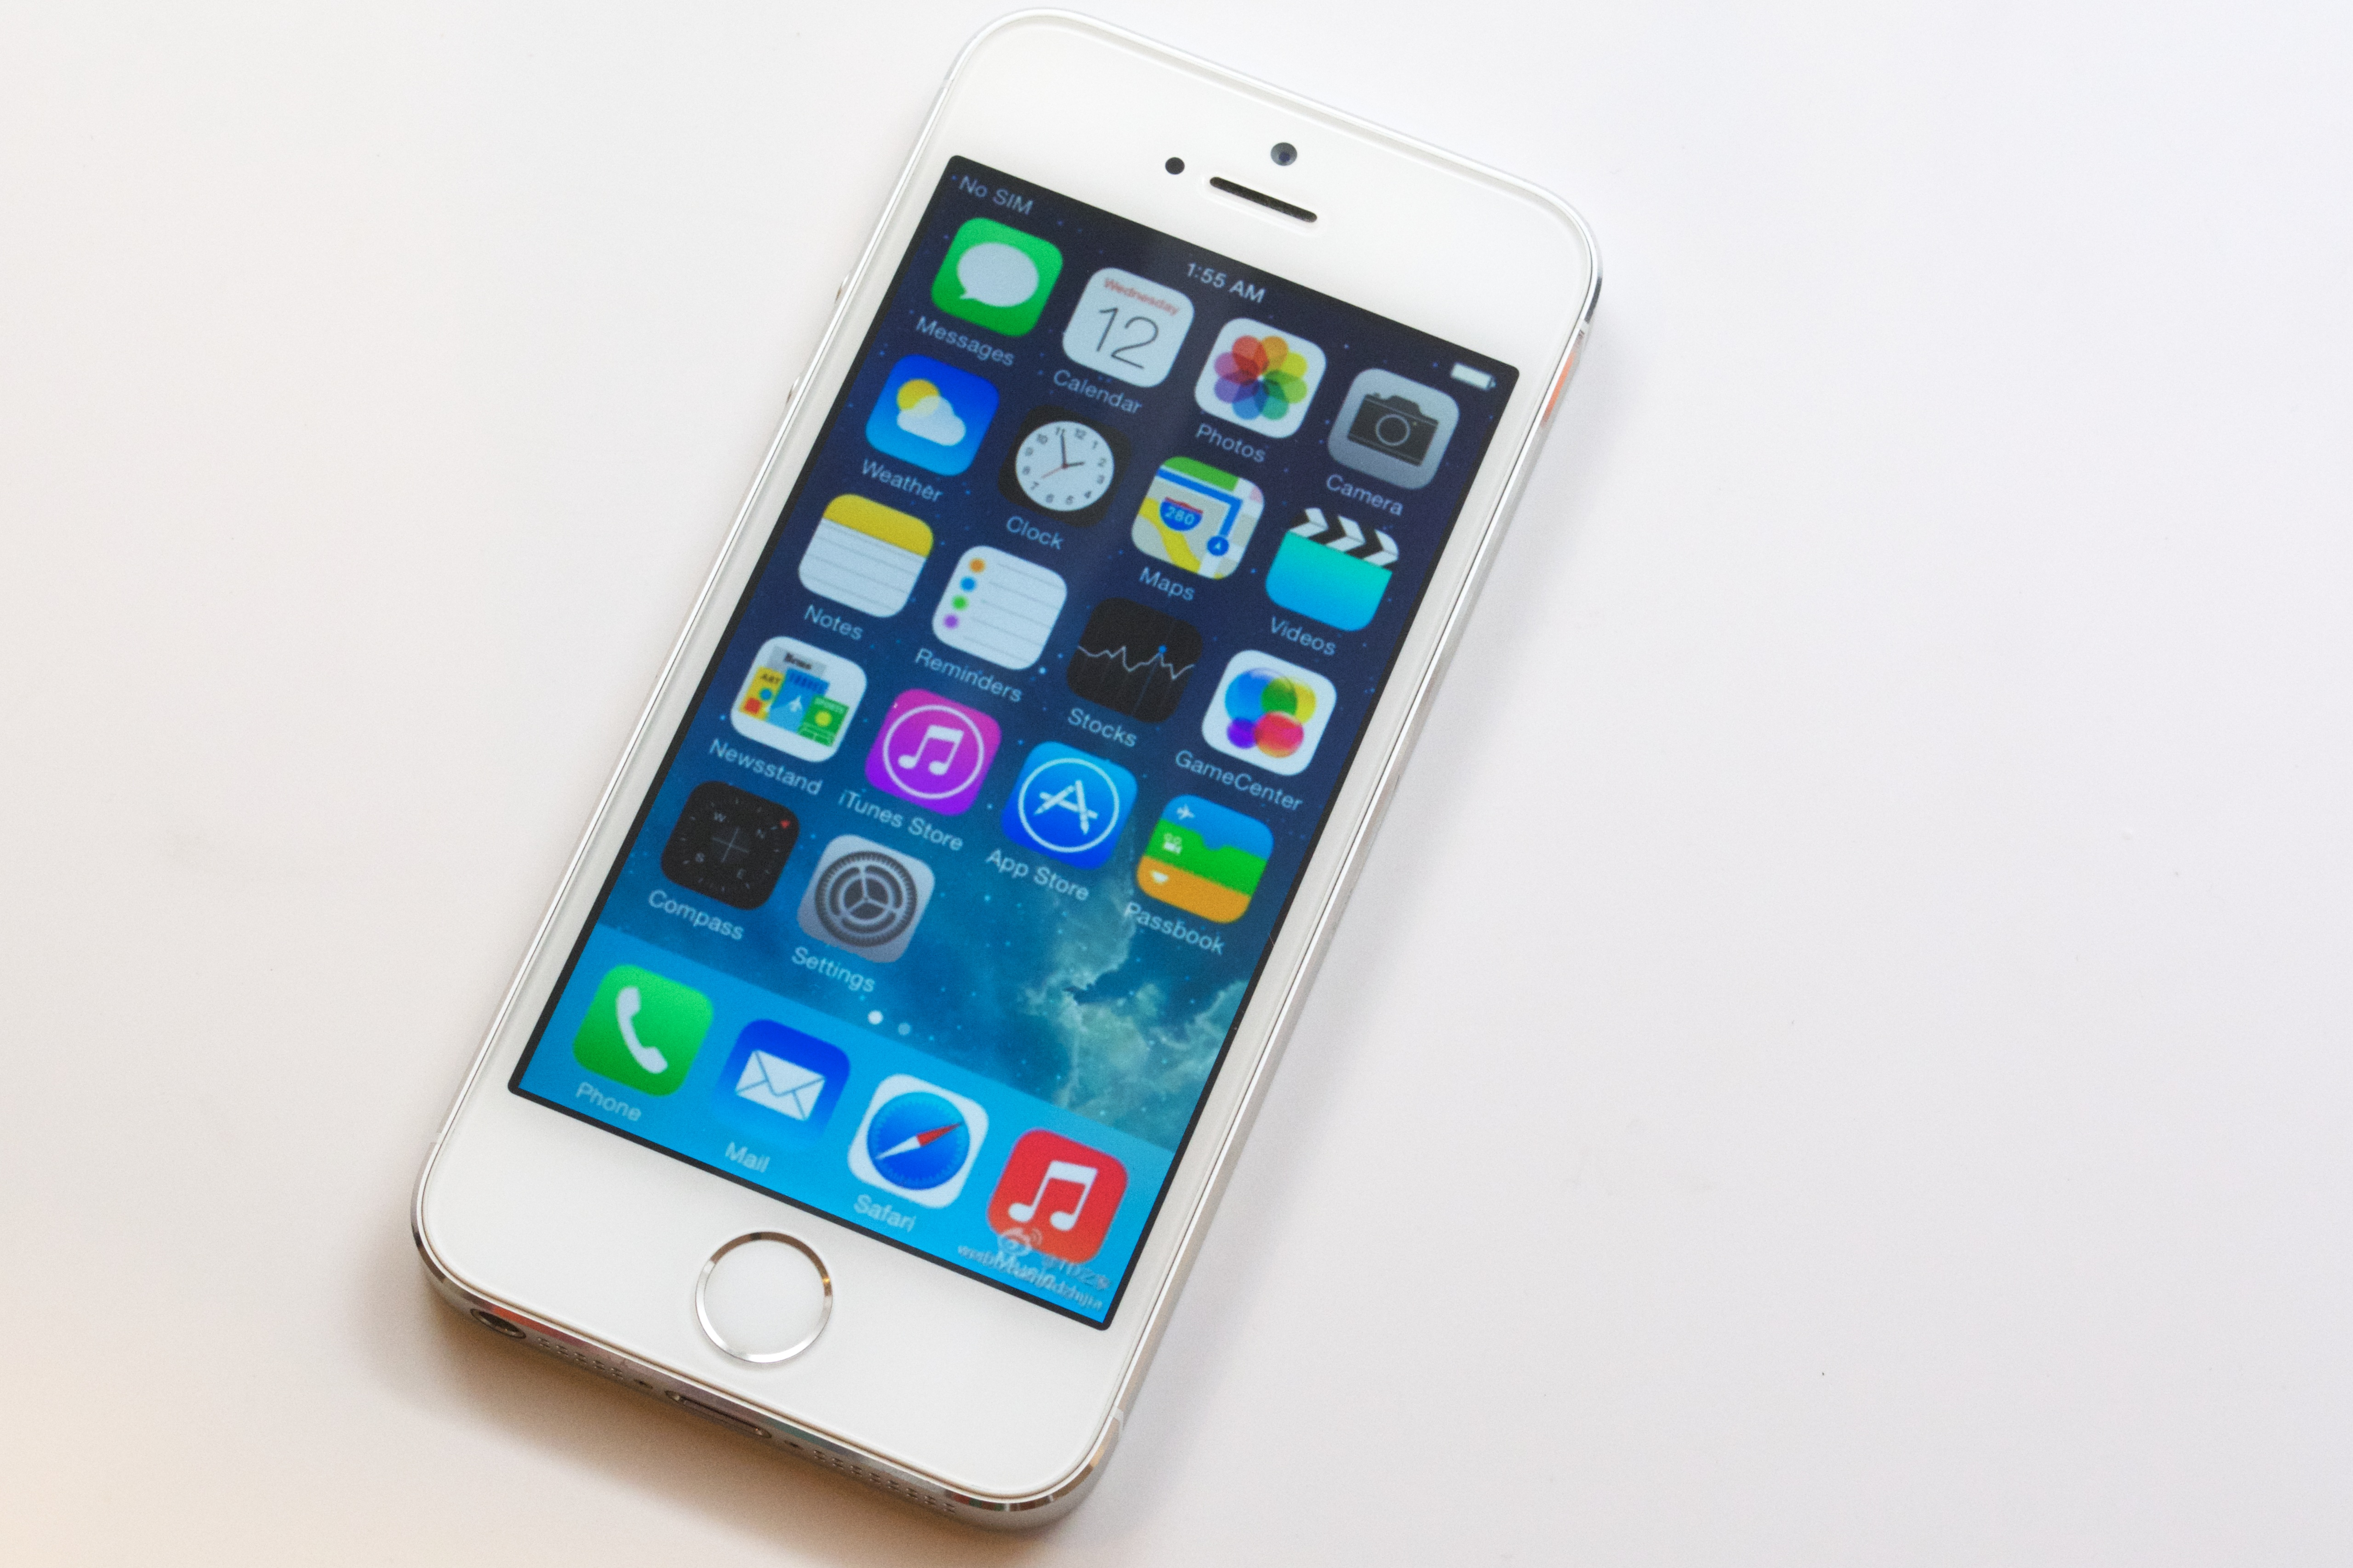 AT&T is launching VoLTE this month which means it should be ready if Apple adds support in IOS 8 and the iPhone 6.